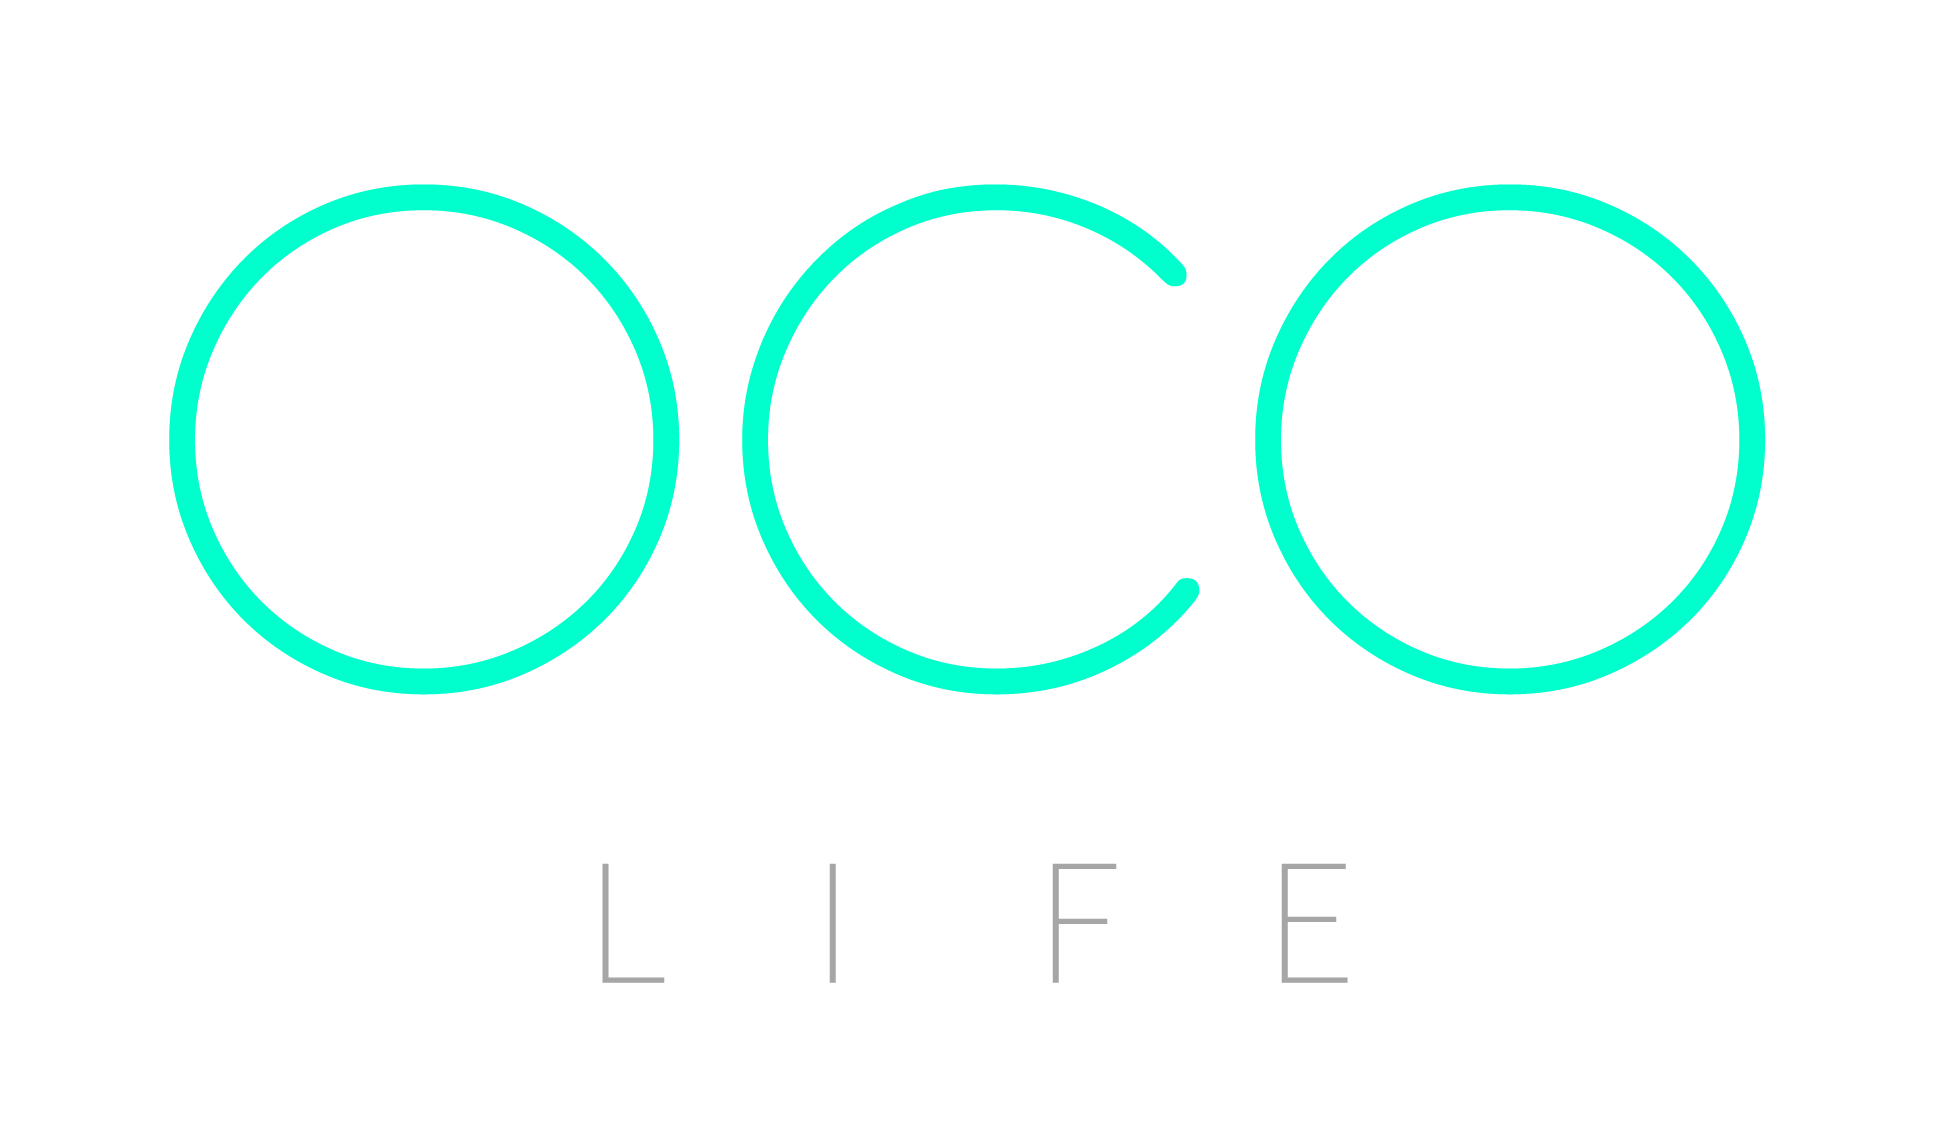 OCO Life              –   Pioneering Innovative, Natural and Effective Health Solutions